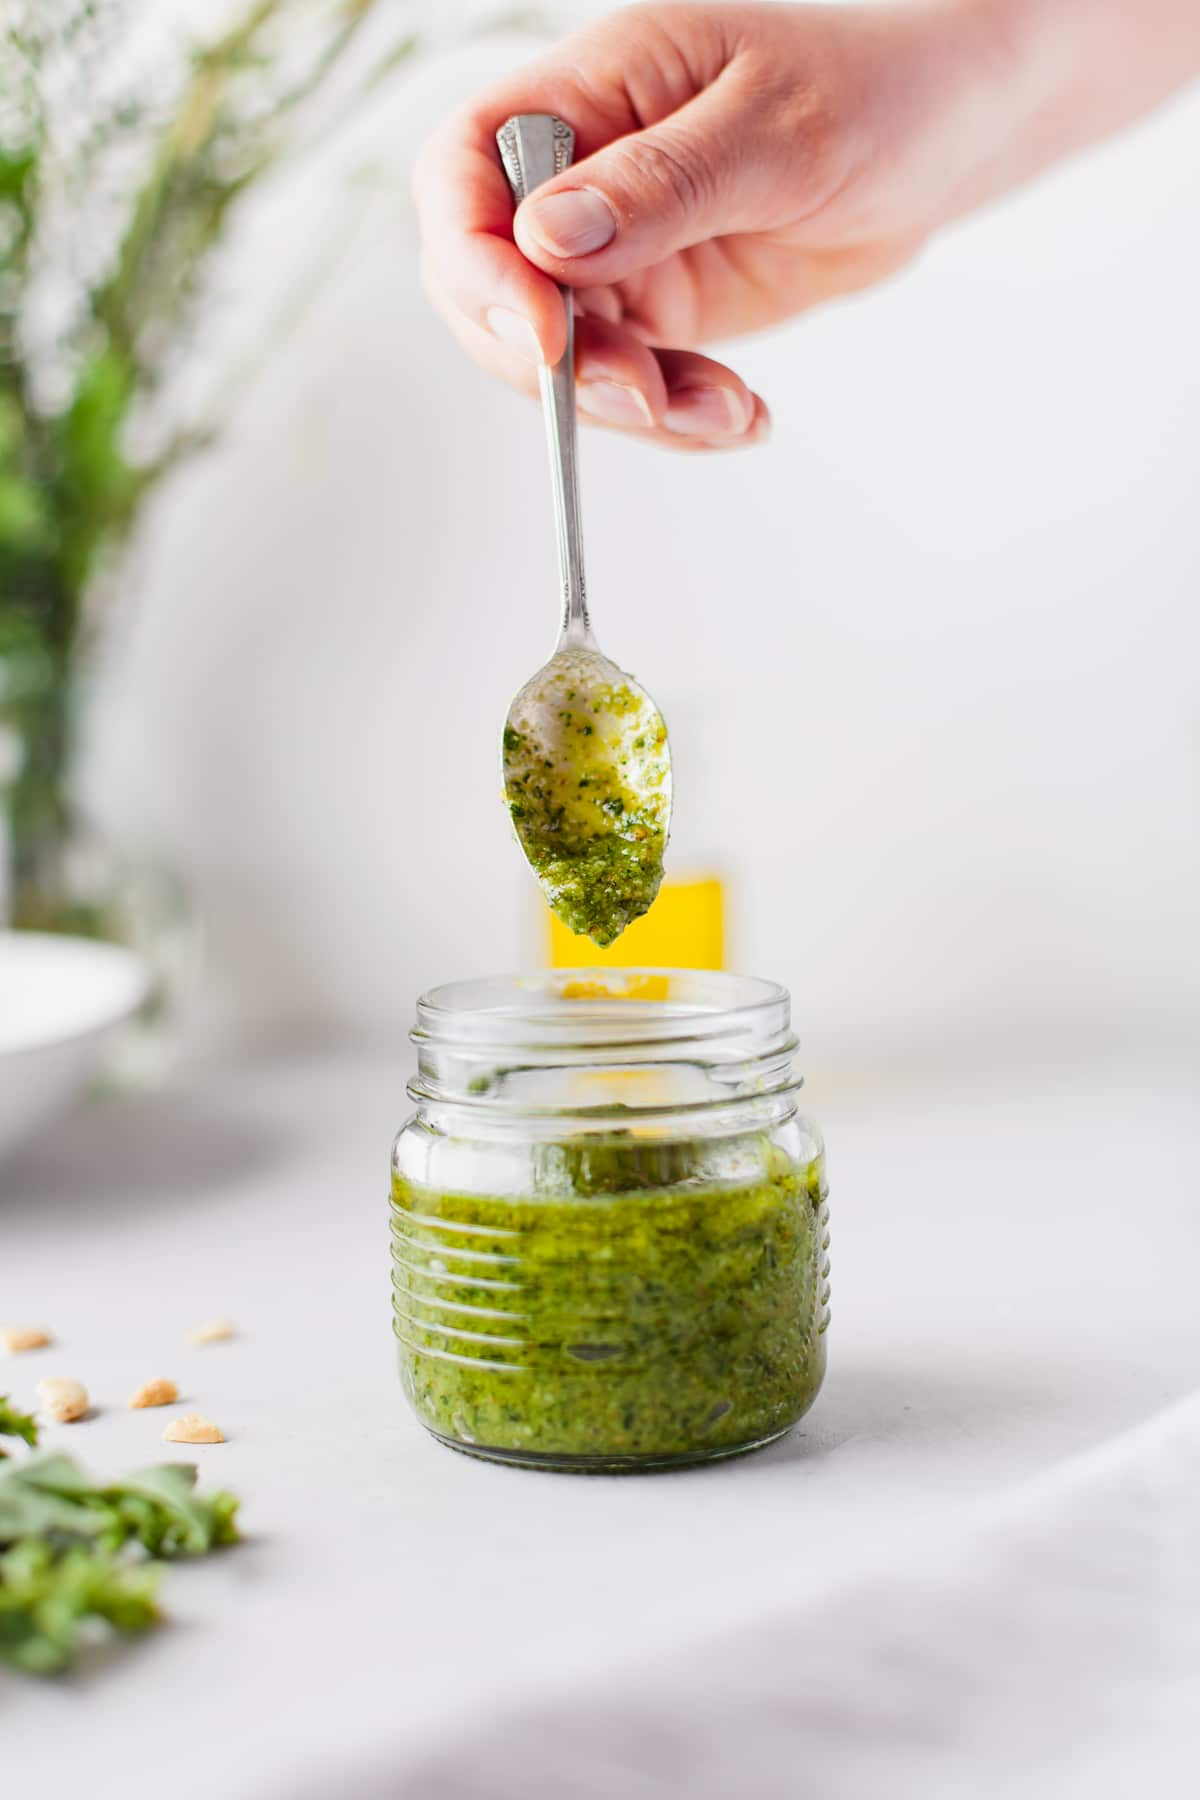 hand with spoon in a glass jar of pesto